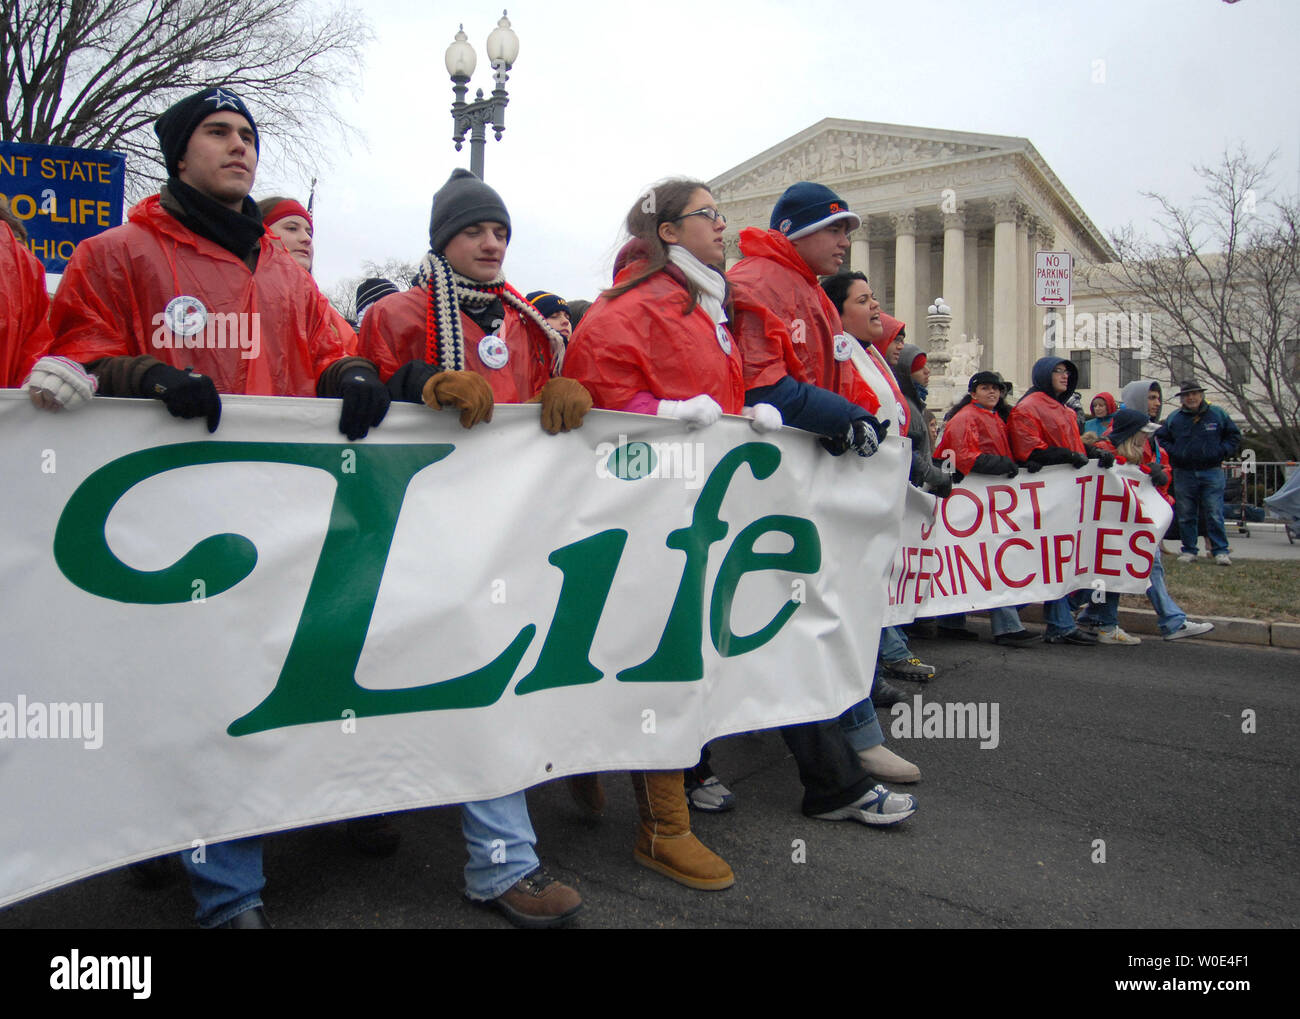 "Pro-life activists walk past the United States Supreme Court as they take part in the ""March for Life"" anti-abortion rally in Washington on January 22, 2008. The demonstration marked the 35th anniversary of the Supreme Court's 1973 decision in Roe vs Wade making abortions legal. (UPI Photo/Kevin Dietsch) Stock Photo"